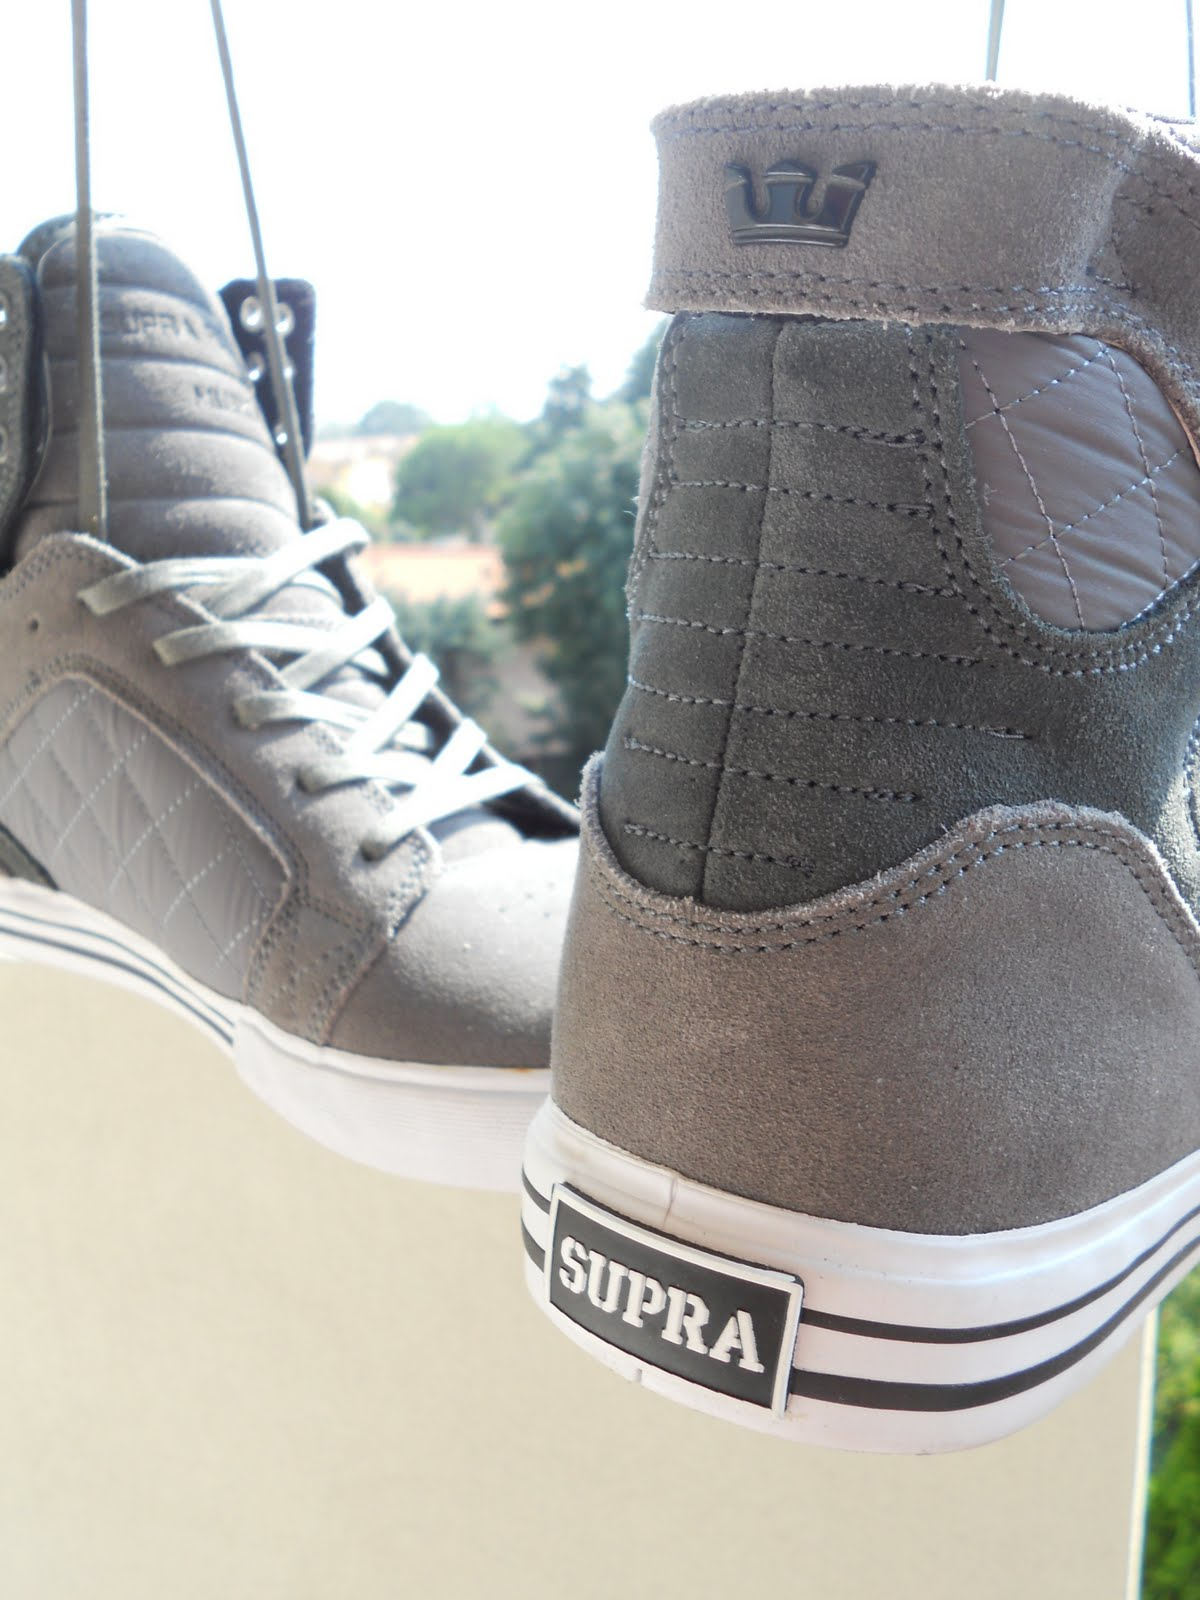 Skater Shoe Brand Starts With S